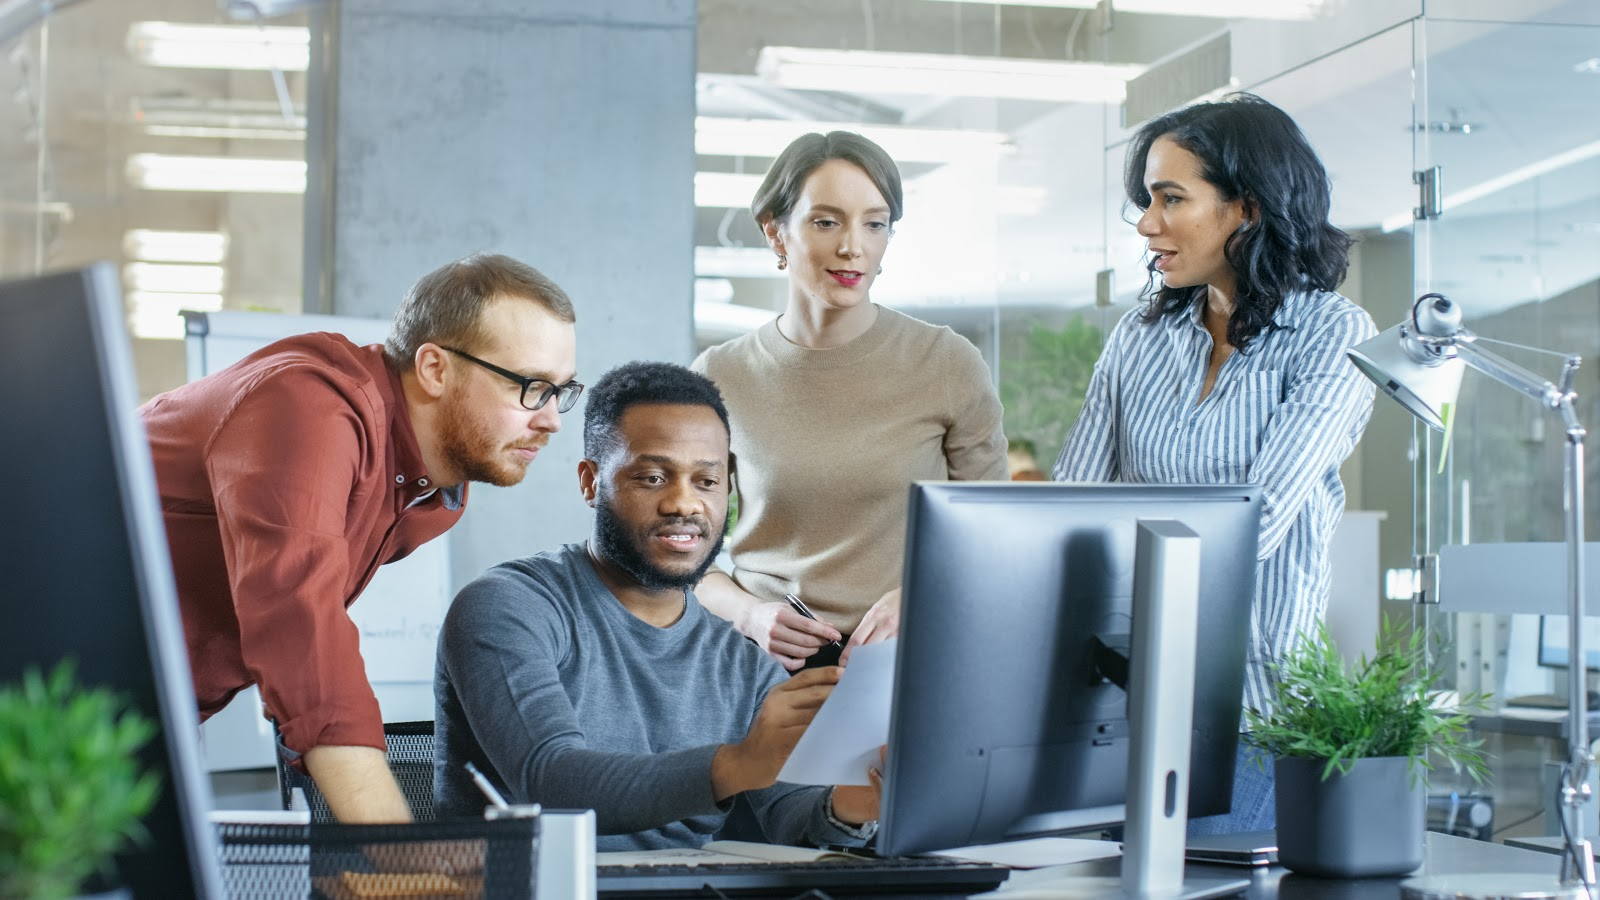 Group of diverse co-workers gathered around computer